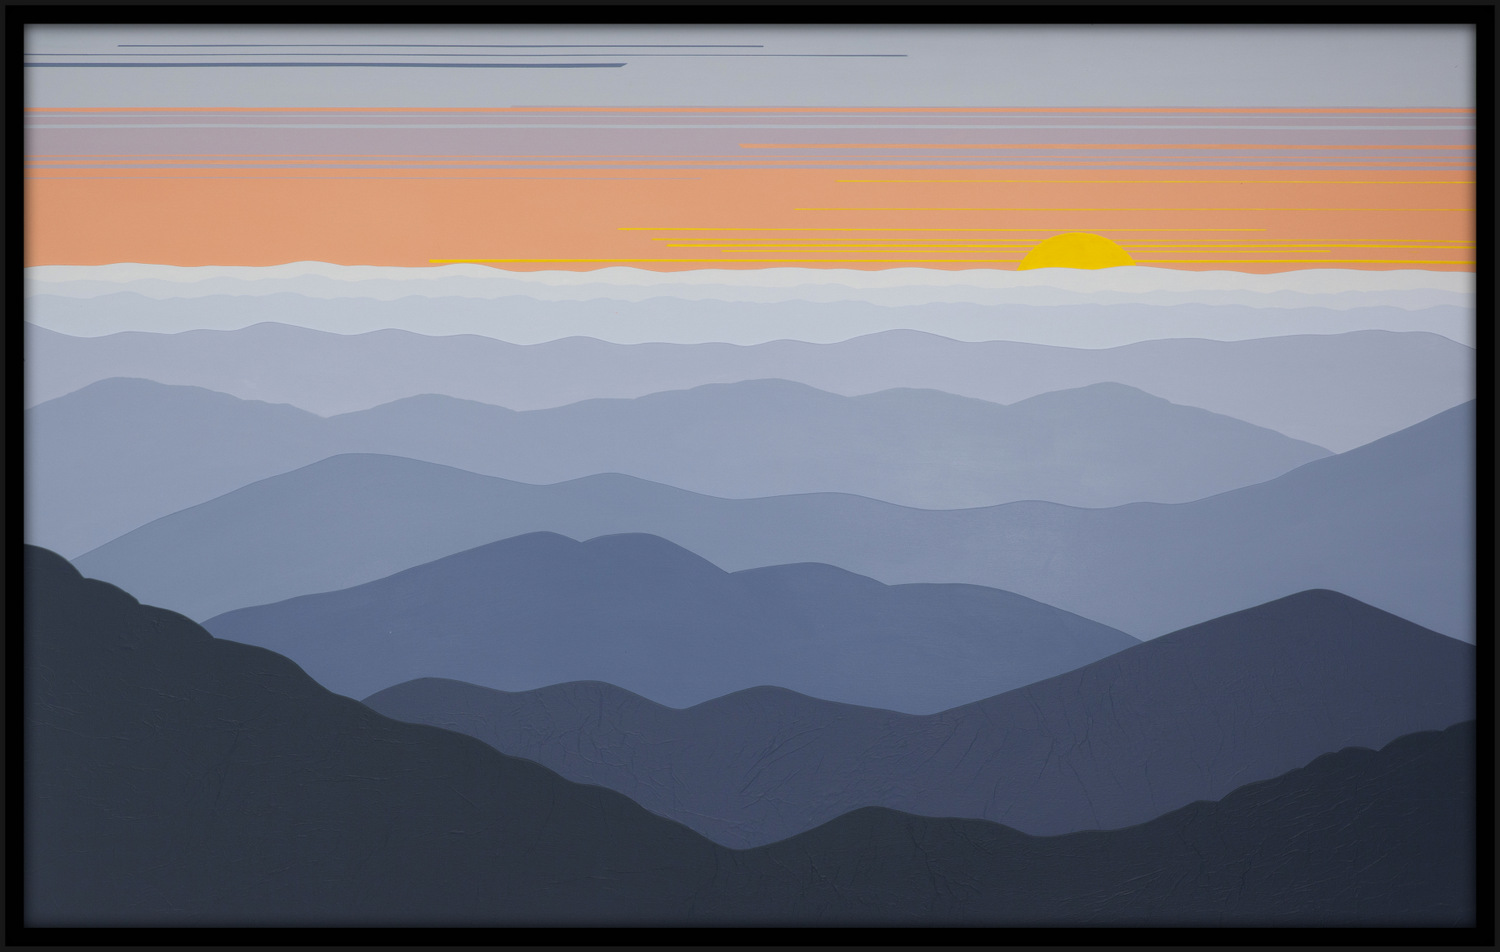 Commission Dimensional Landscape Paintings, Cindy Lou Chenard, Asheville, North Carolina-028.jpg